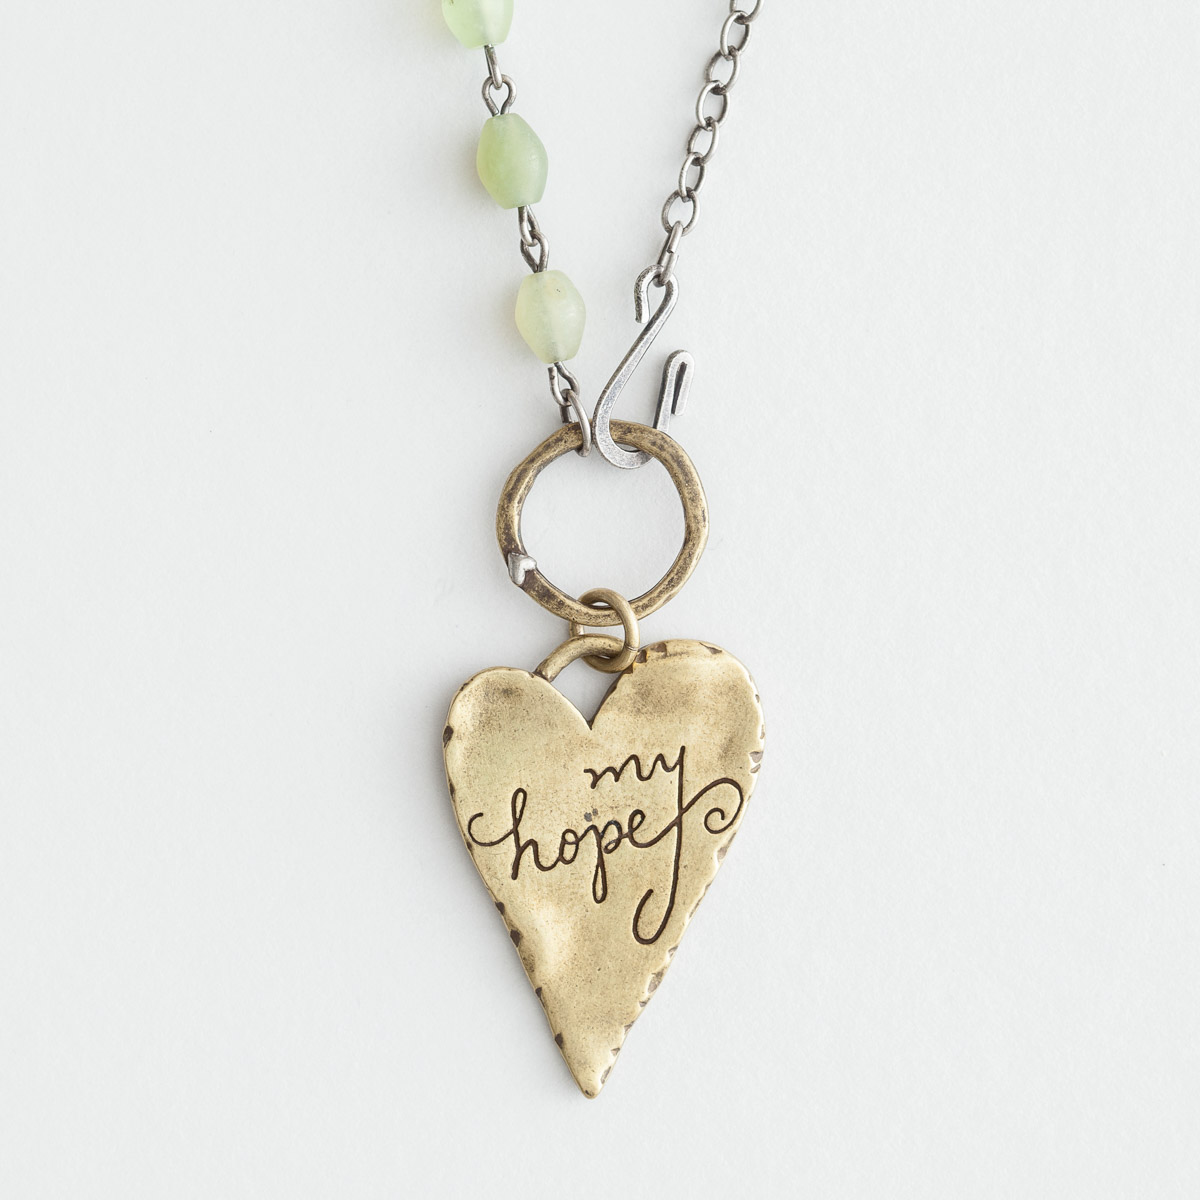 My Hope - Pendant Necklace